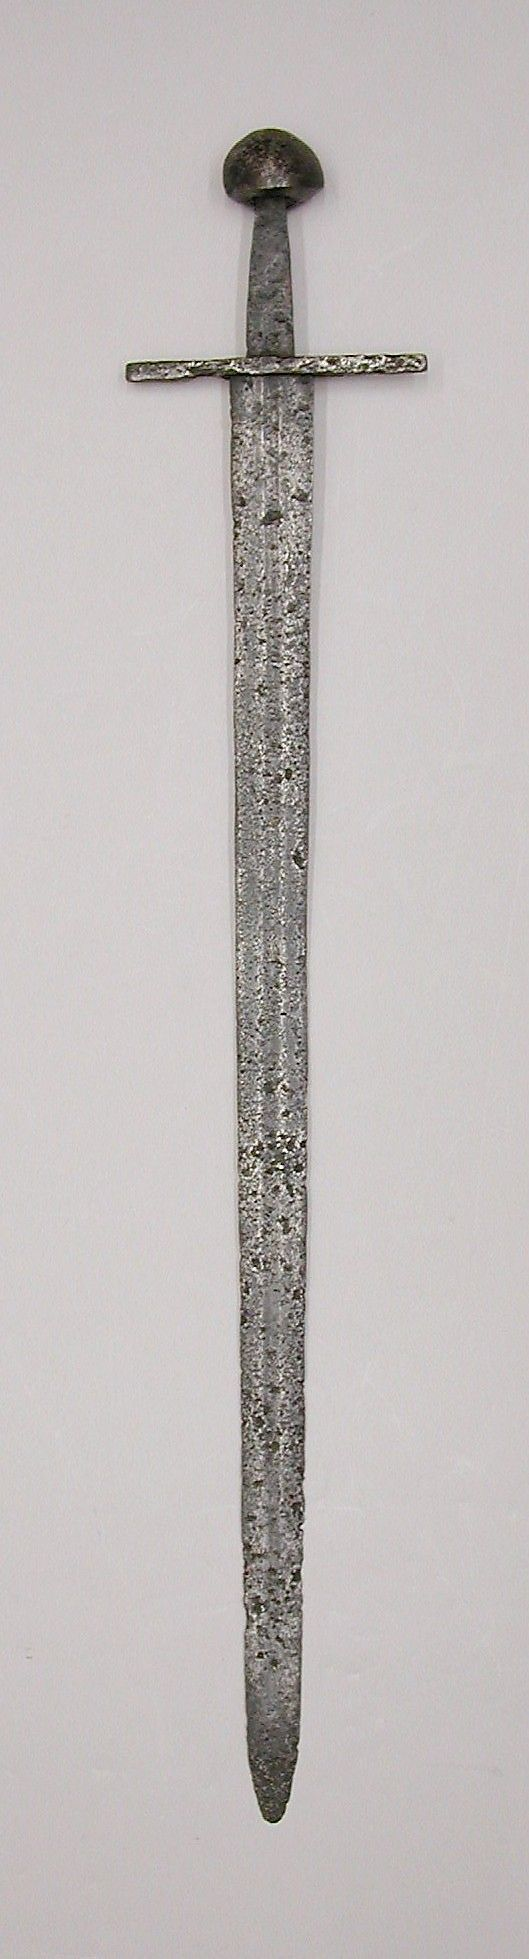 Sword, Date: possibly 12th–early 13th century Culture: Western European Medium: Iron Dimensions: L. 37 3/4 inches (95.9 cm); W. 6 3/4 inches (17.1 cm); Wt. 2 lb. 9 oz. (1158 g)  Metropolitan Museum of Art  Accession Number: 07.53.2